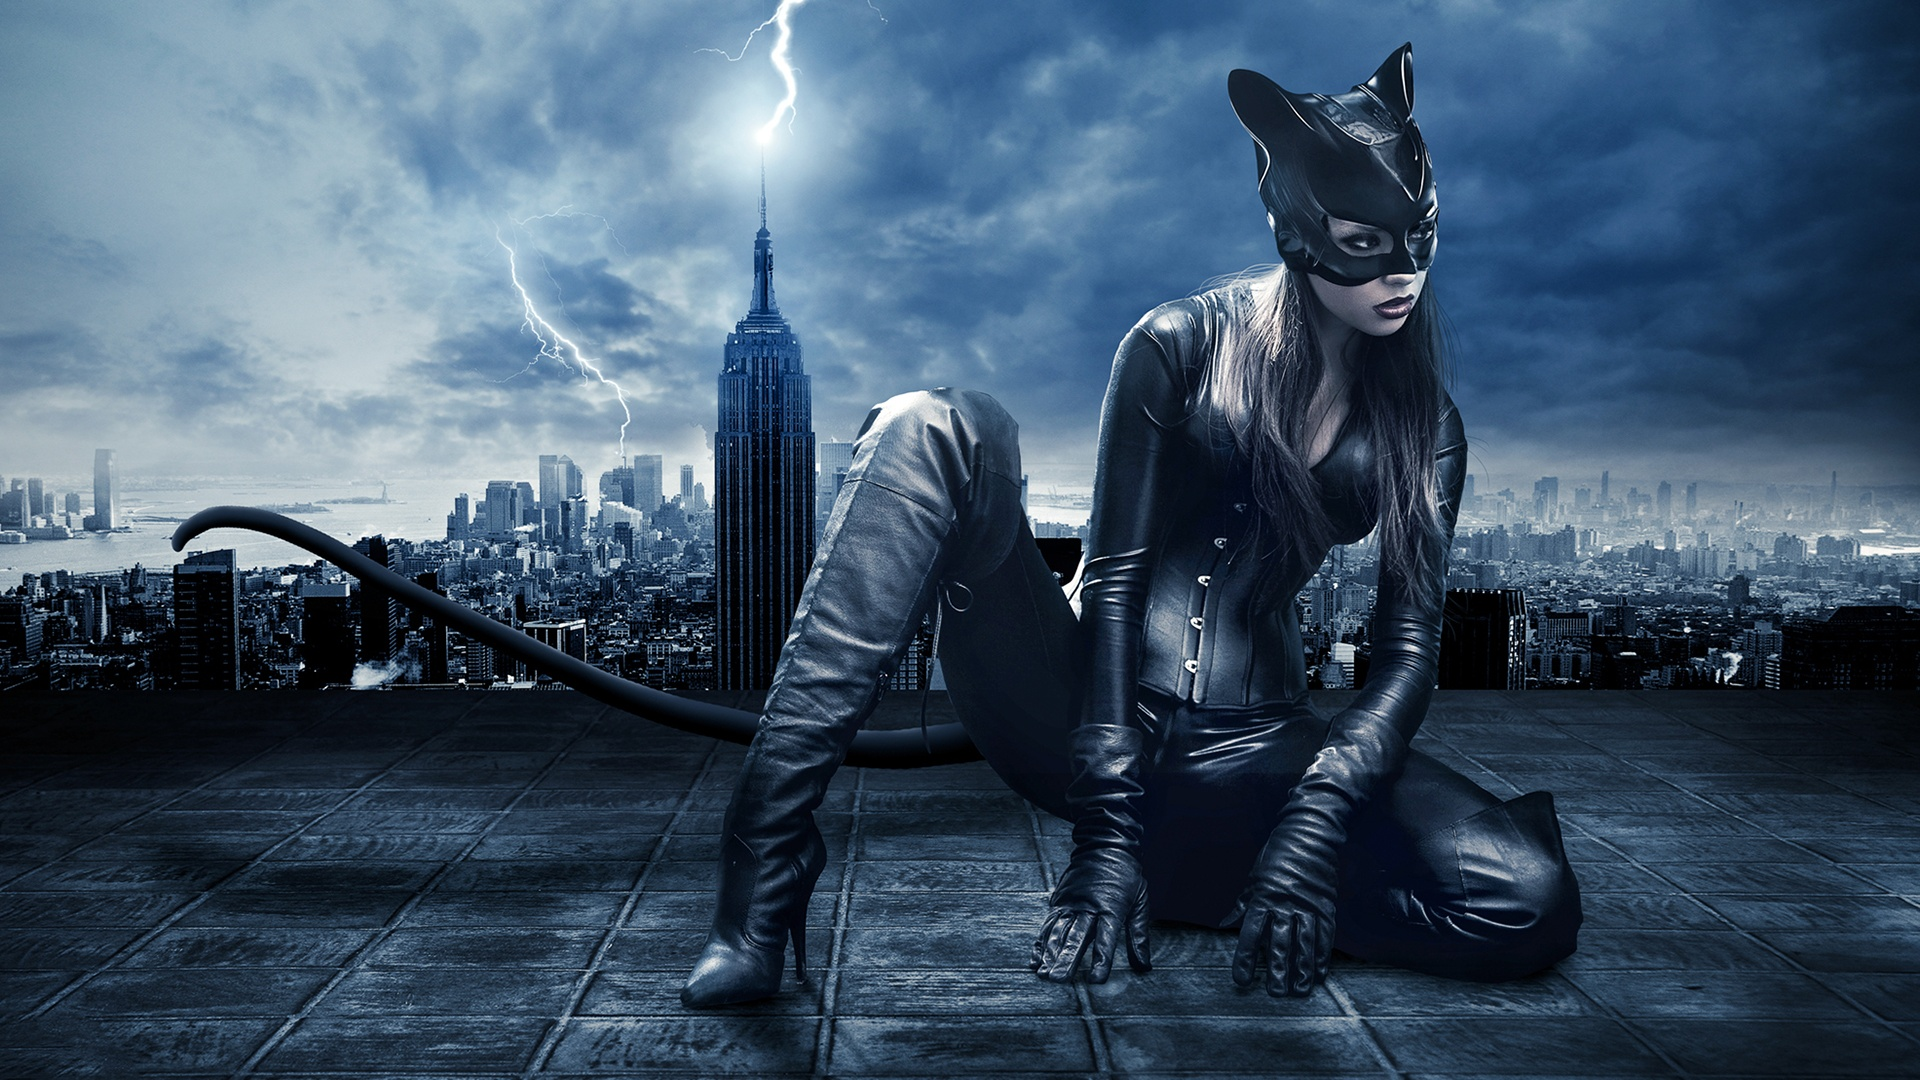 Catwoman Art Wallpaper